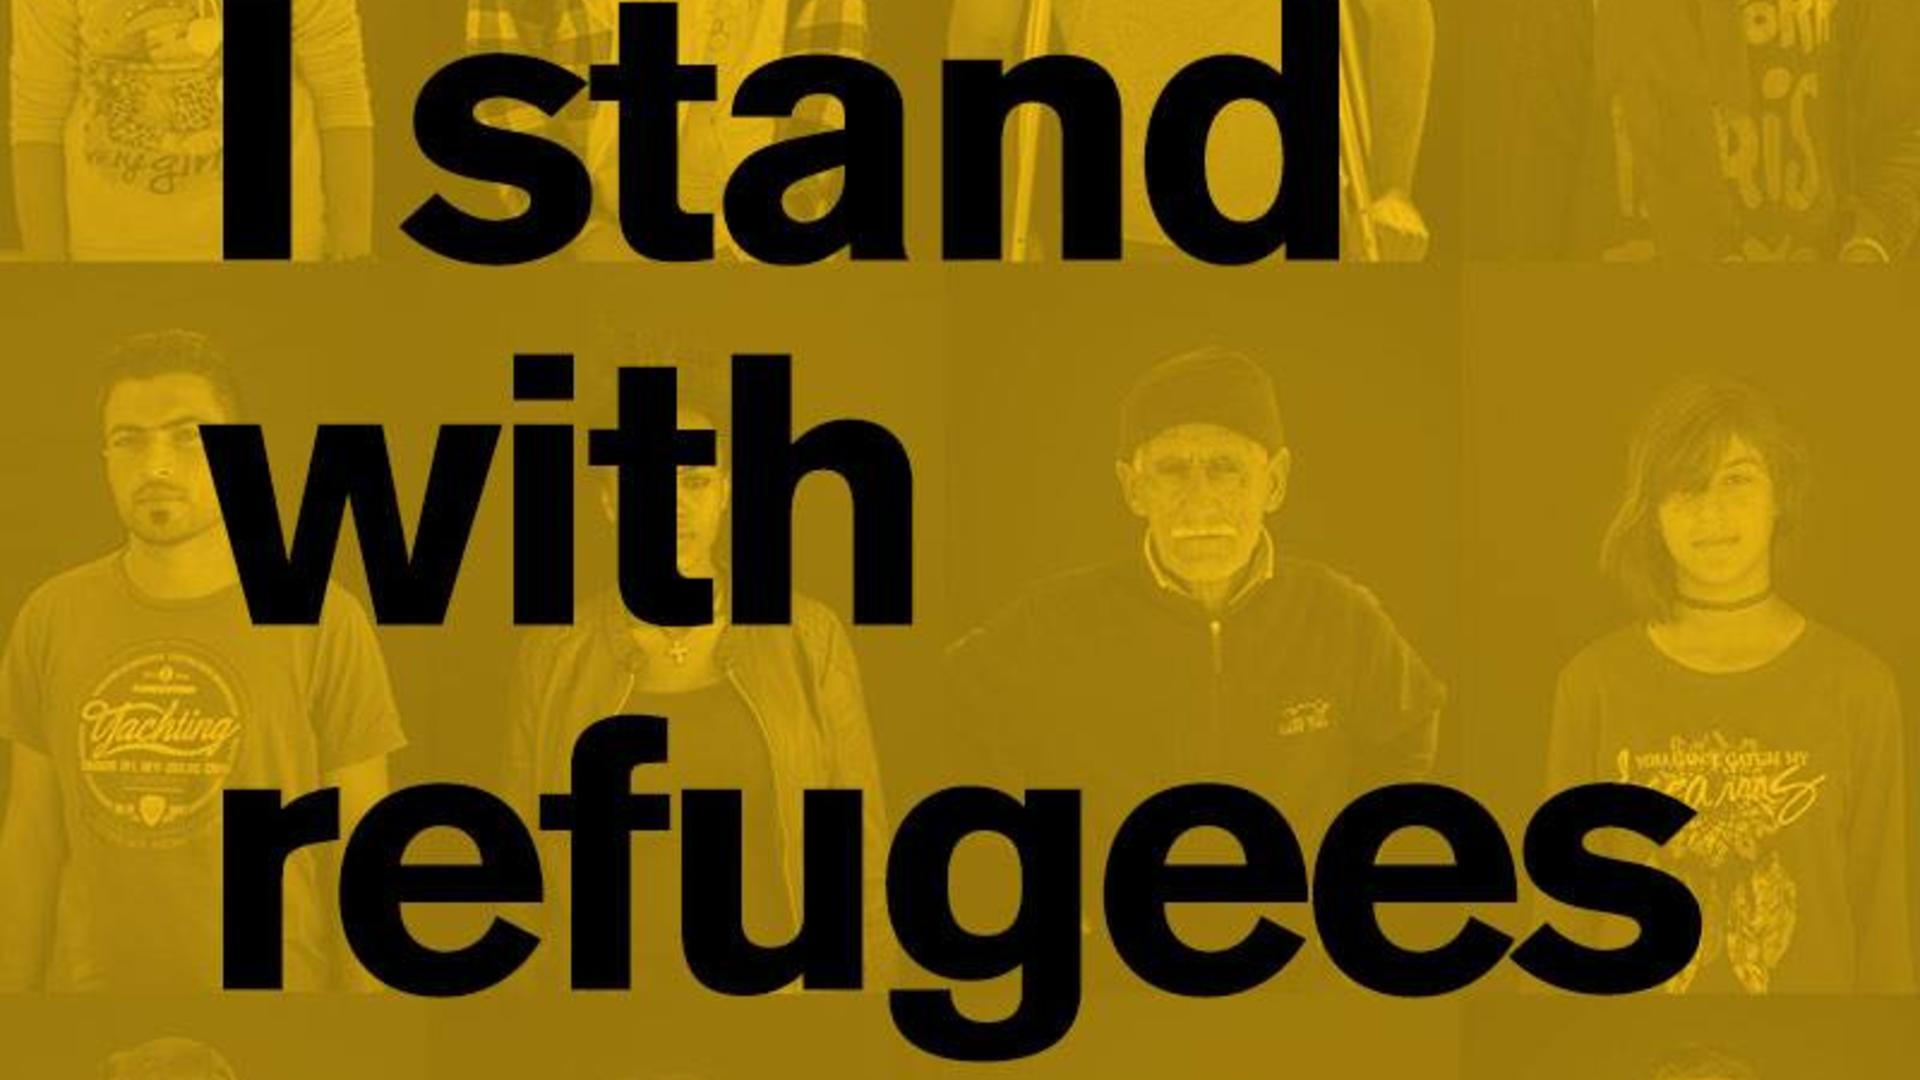 """I stand with refugees"" graphic"